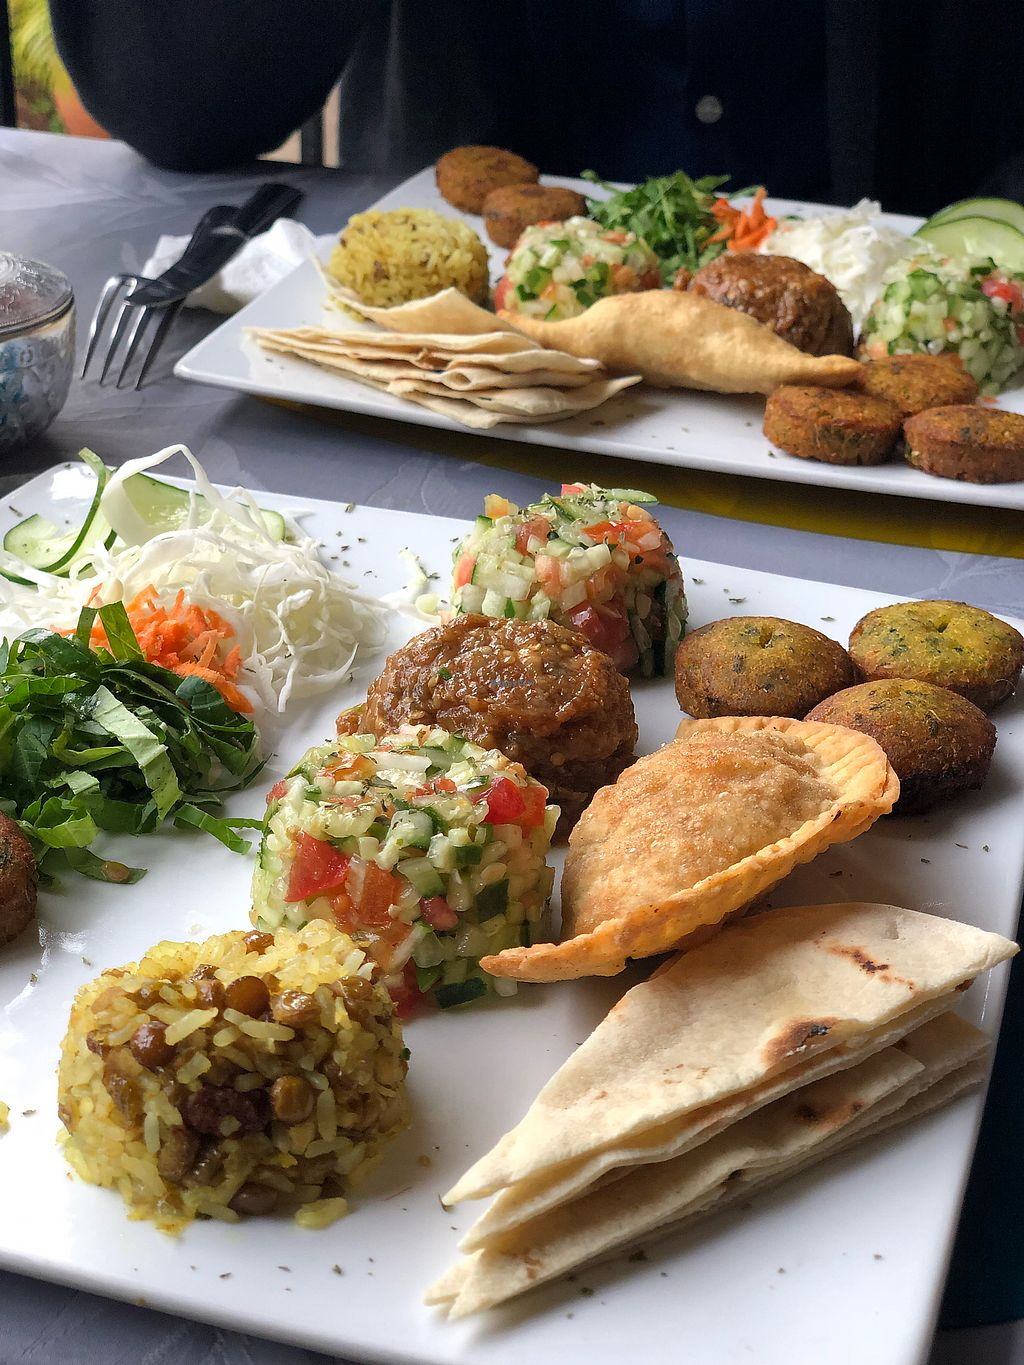 """Photo of Topoly  by <a href=""""/members/profile/Curl-it"""">Curl-it</a> <br/>Great vegan plate  <br/> January 6, 2018  - <a href='/contact/abuse/image/89916/343642'>Report</a>"""